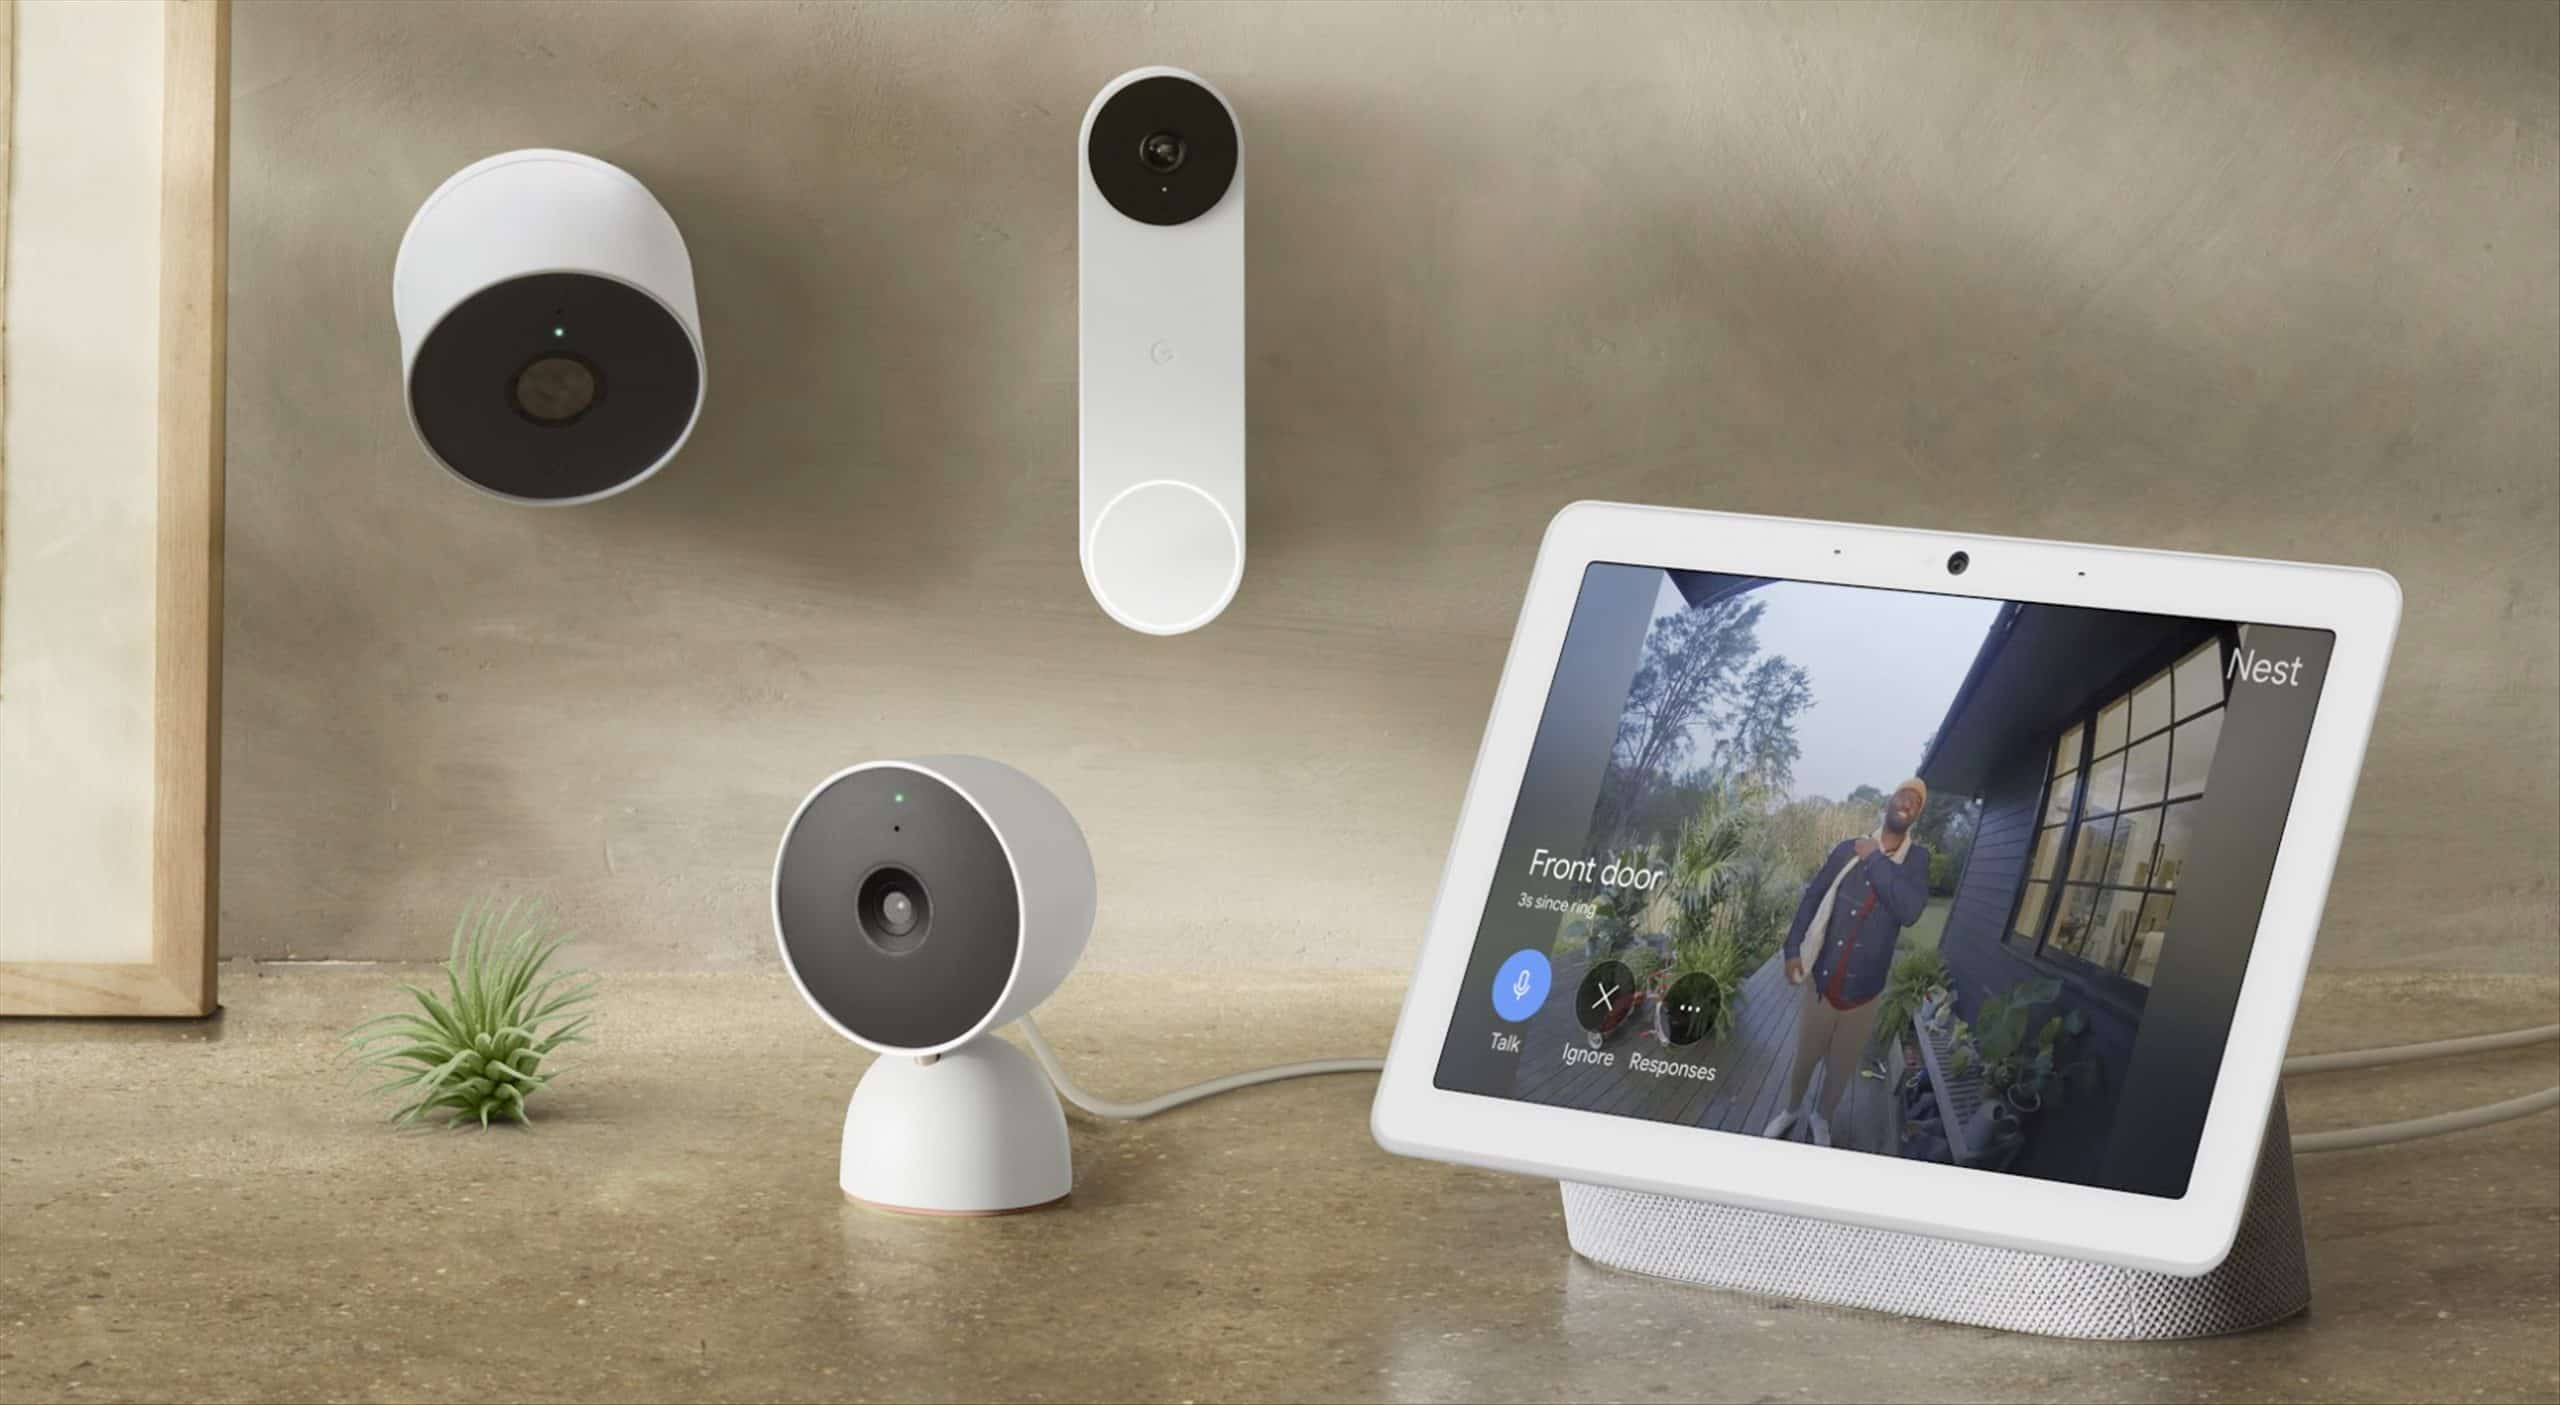 Google Nest new security cameras and doorbell are coming